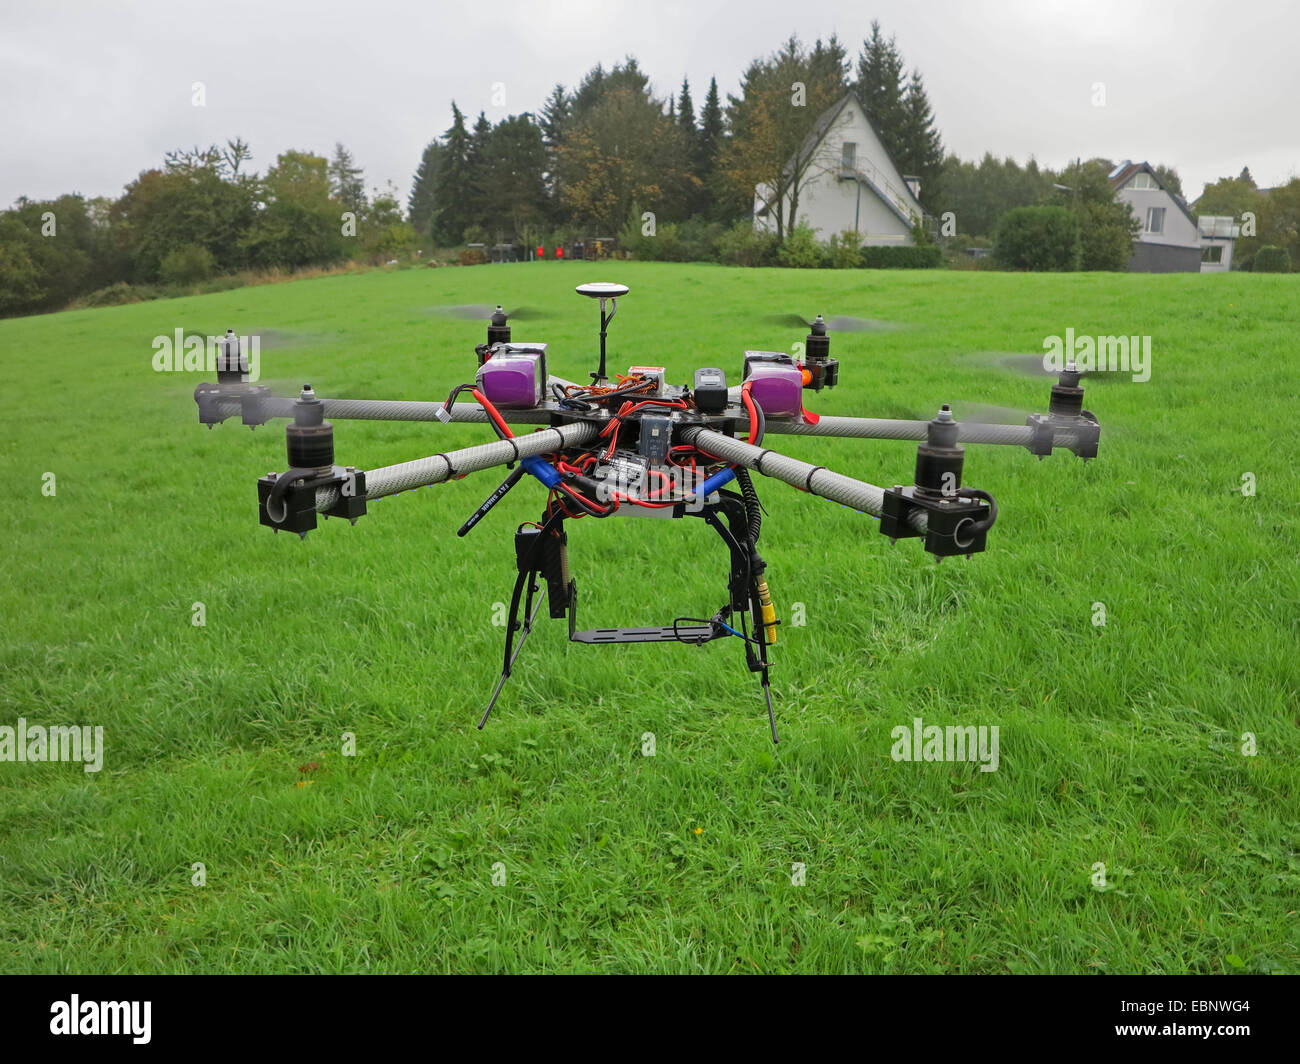 civil drone flying above meadow, Germany - Stock Image